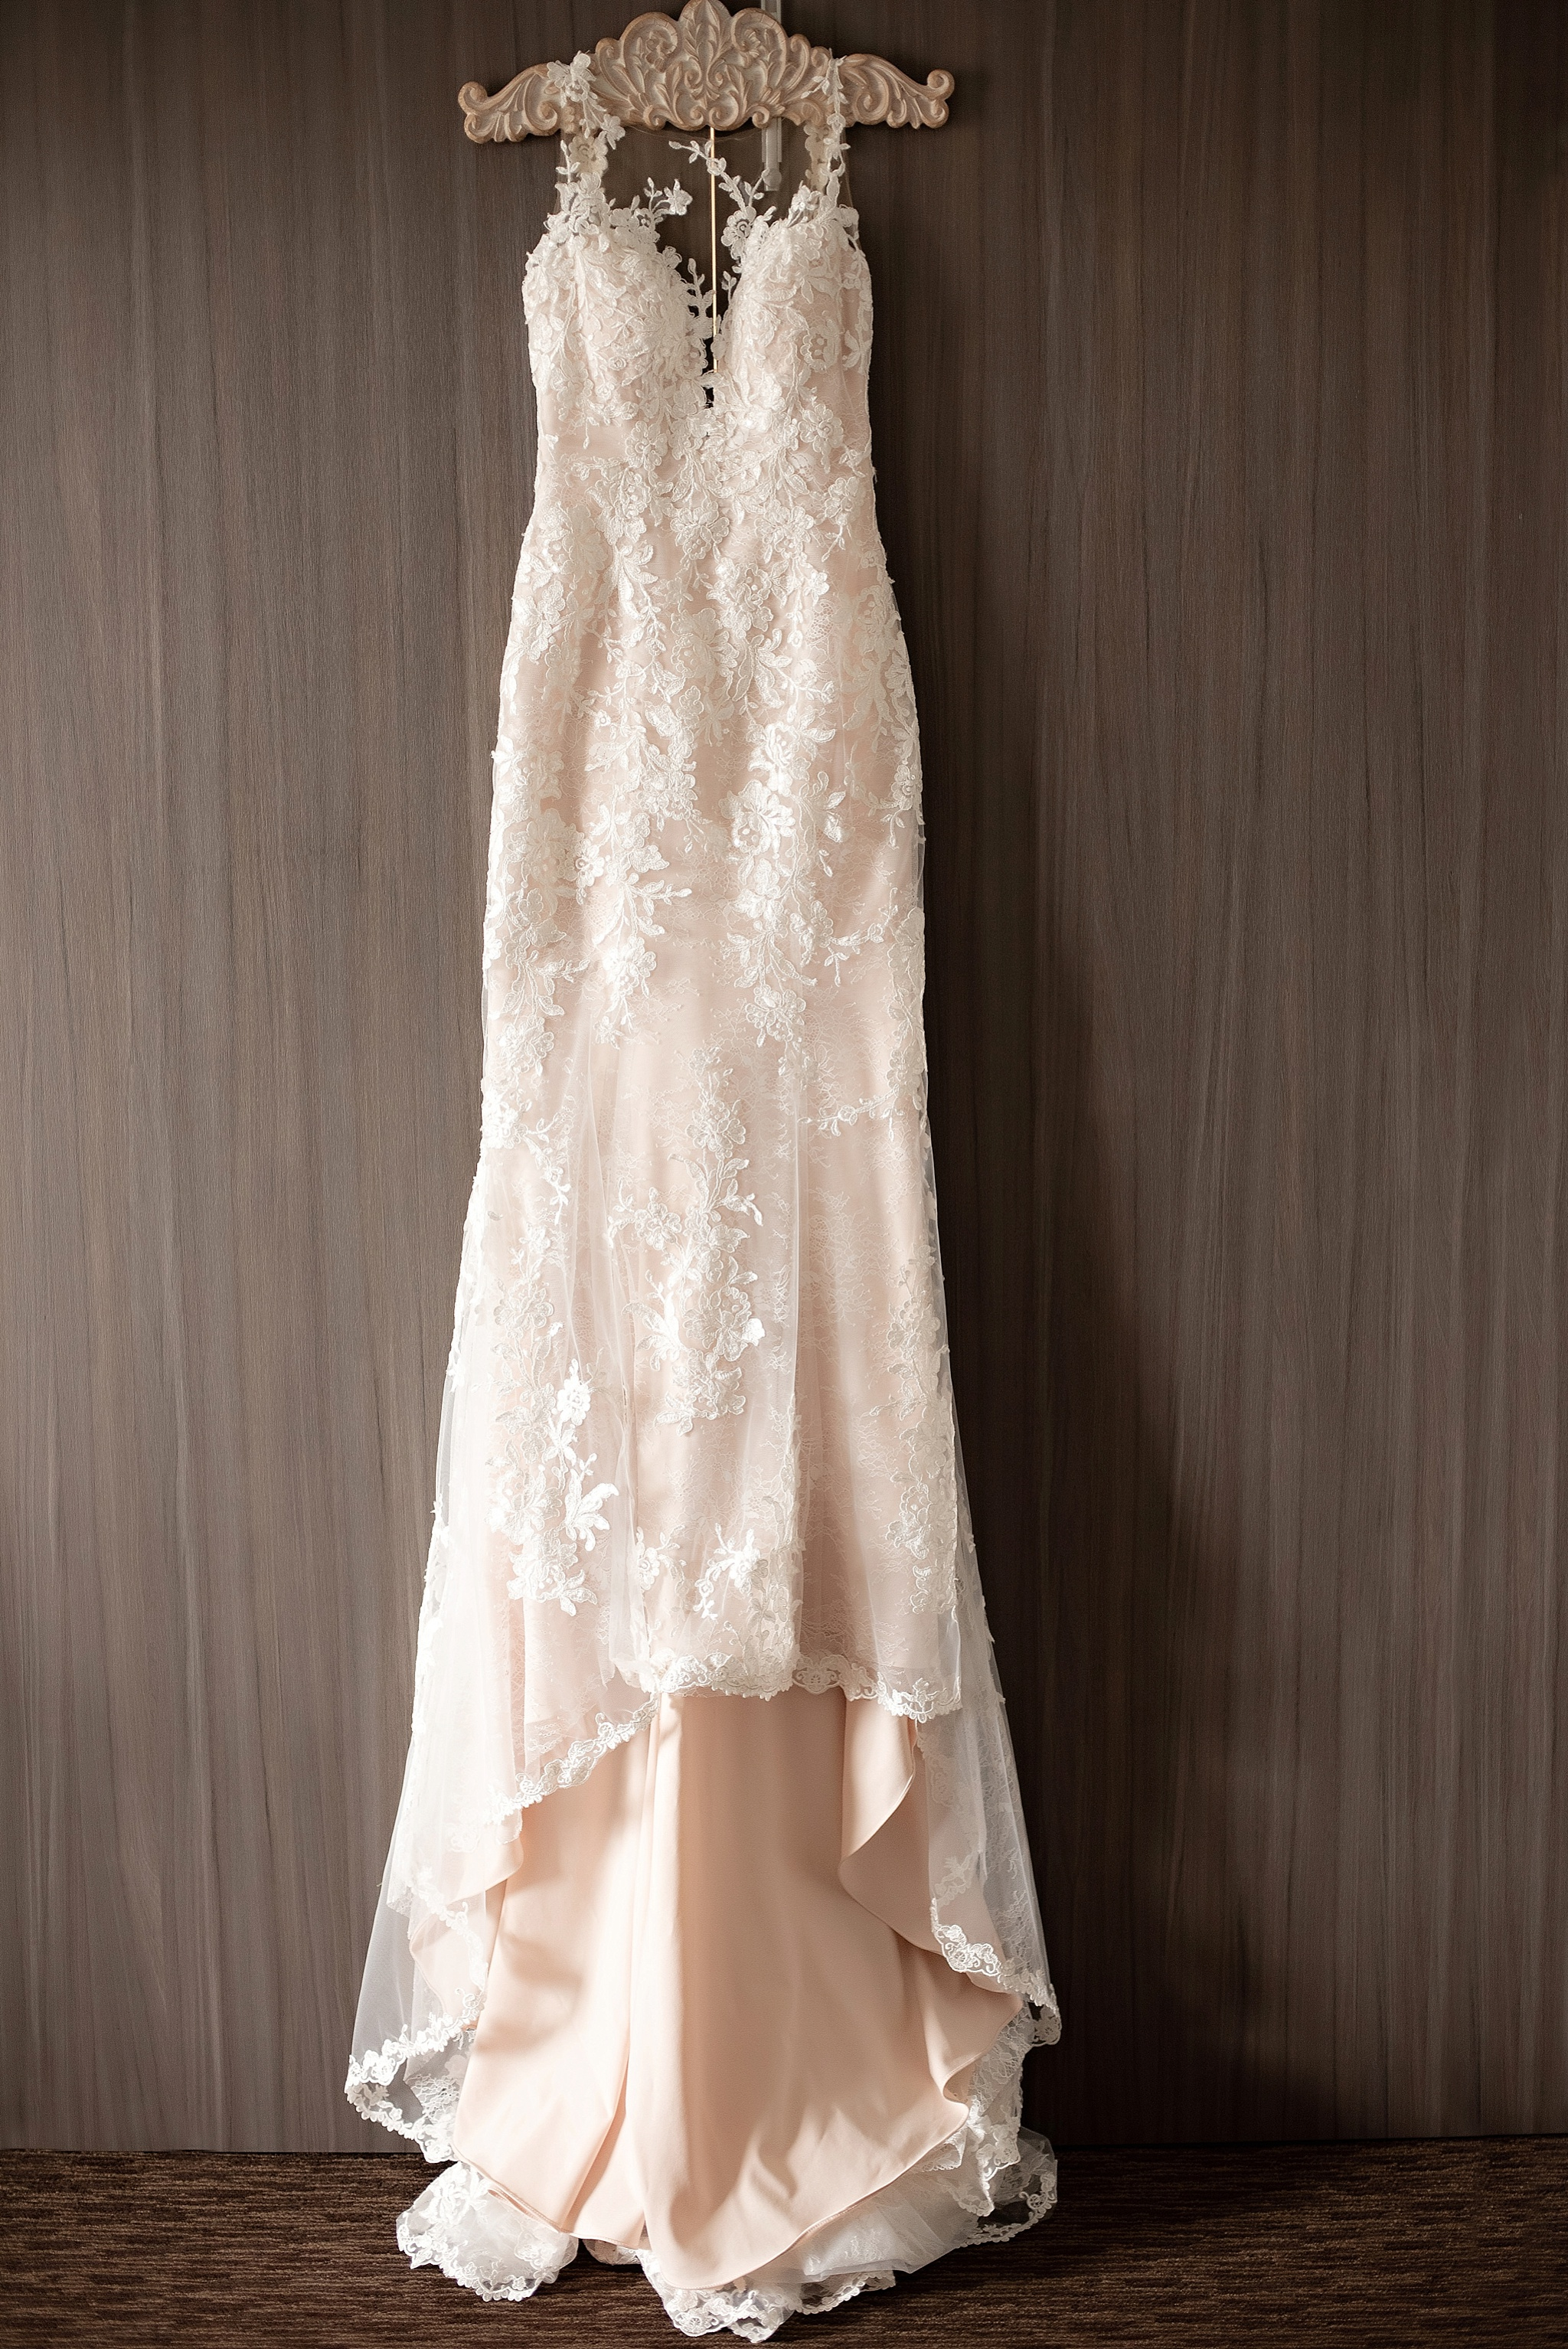 blush lace wedding dress with small train